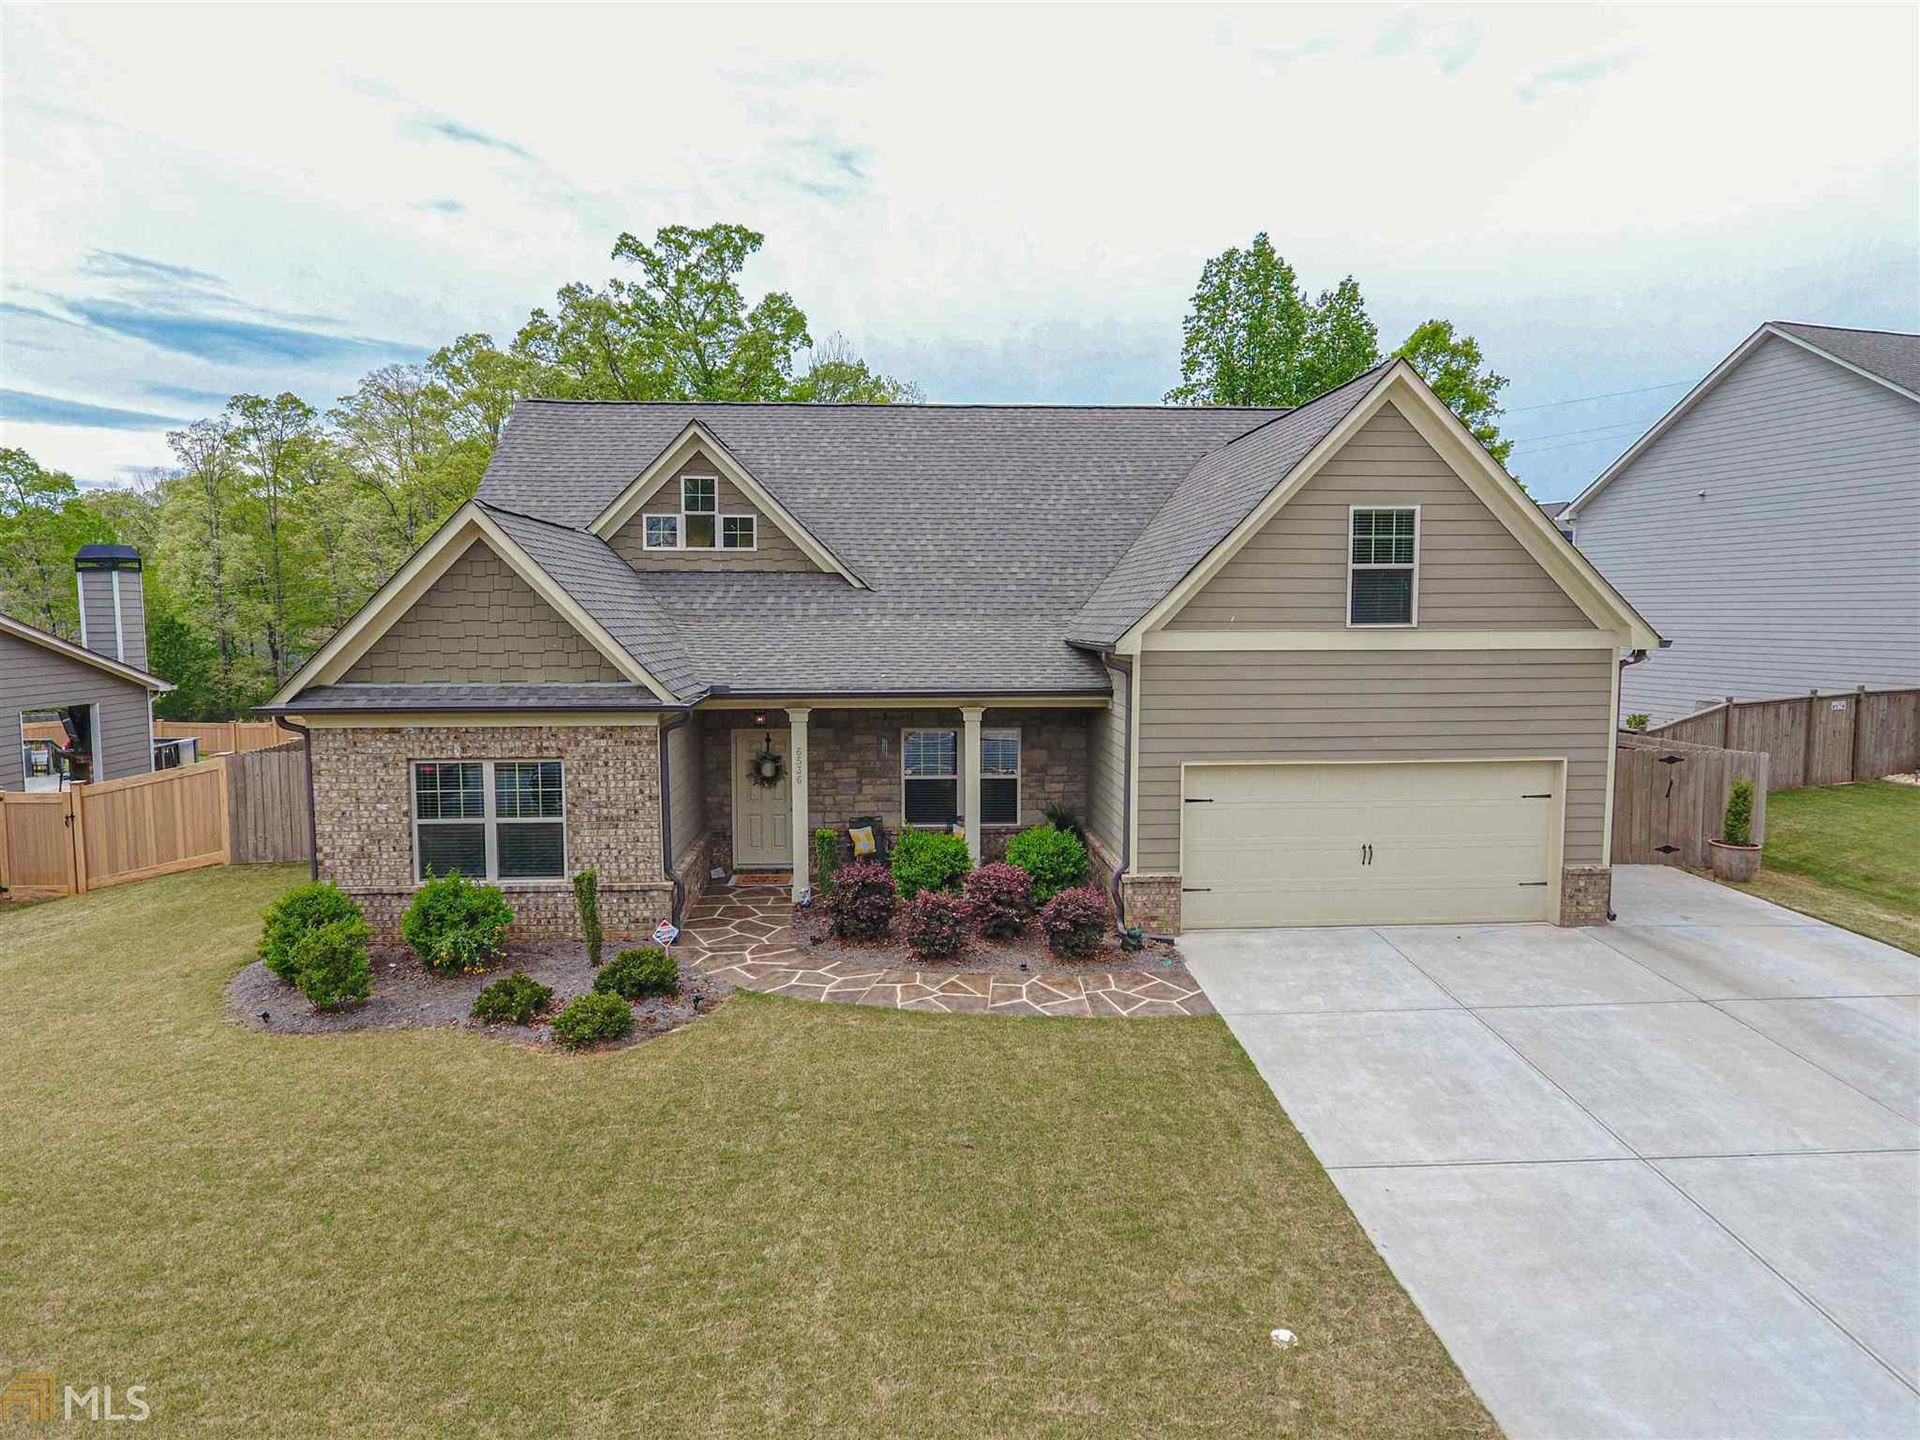 6536 Teal Trail Dr, Flowery Branch, GA 30542 - #: 8961464